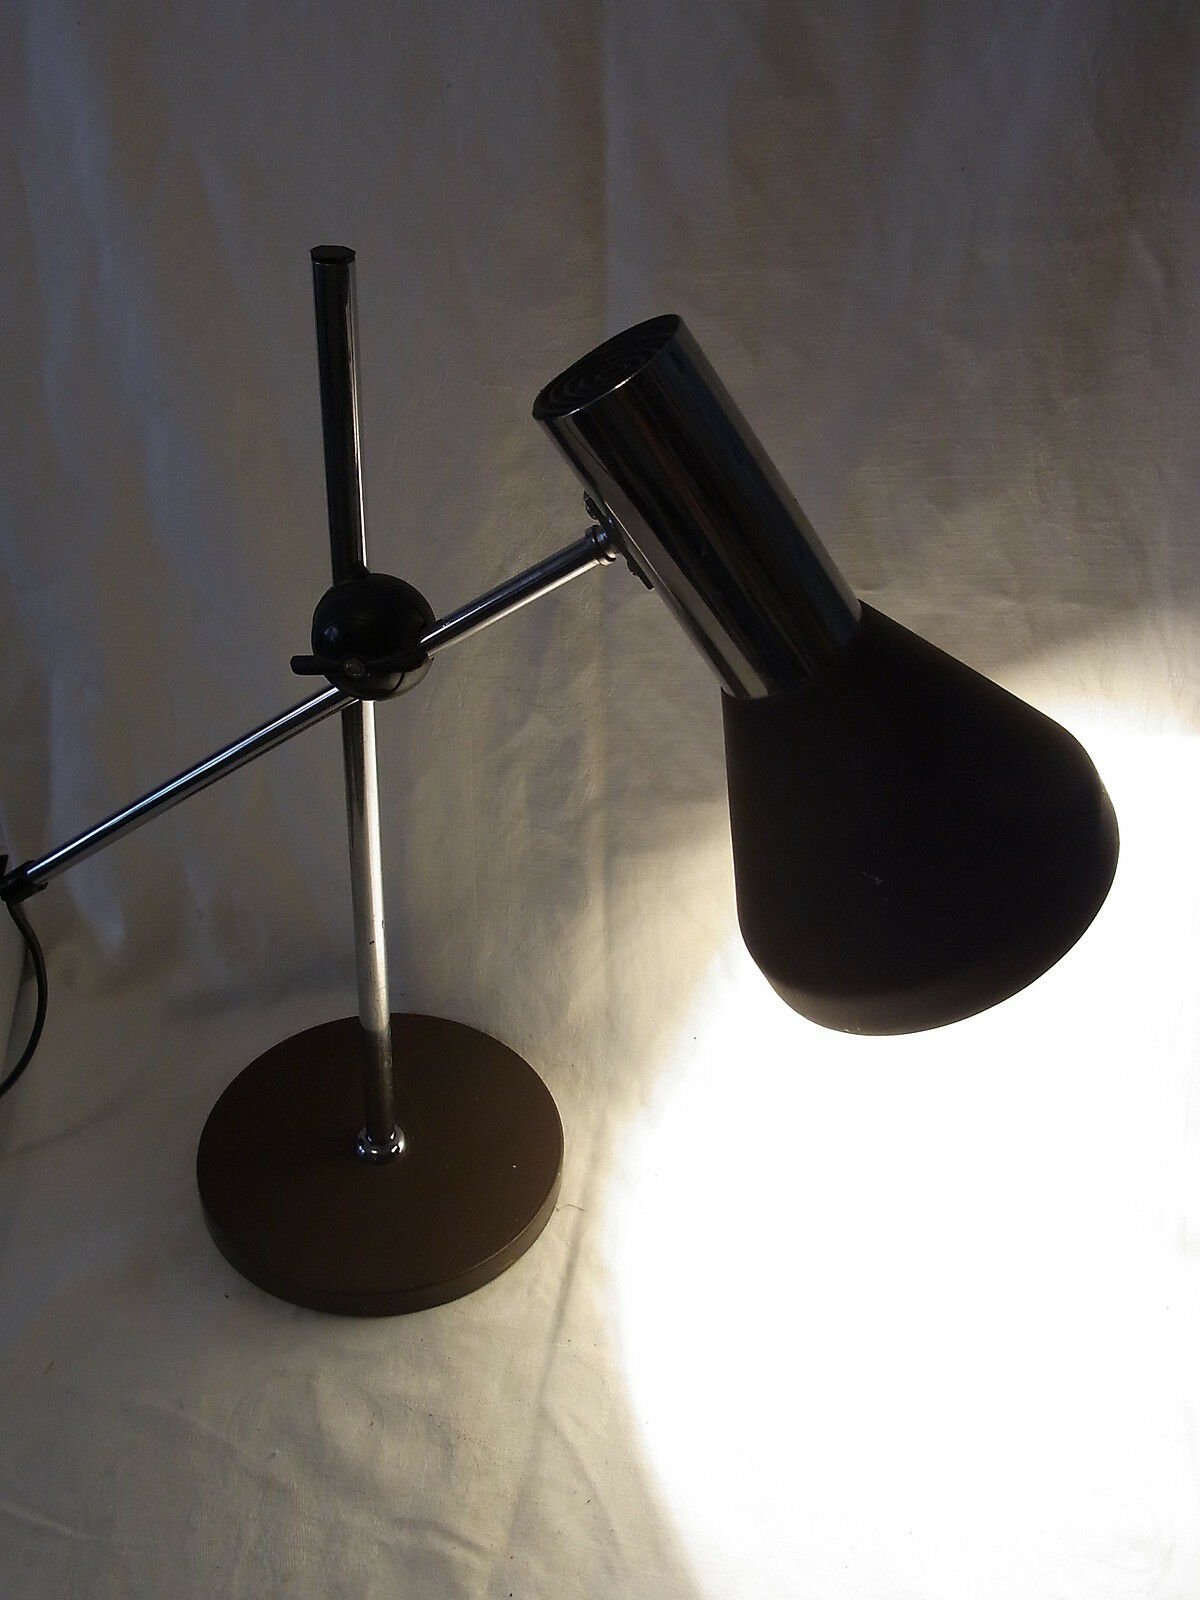 sch ne 70er tisch lampe desk lamp mid century lamp eur 69 99 picclick de. Black Bedroom Furniture Sets. Home Design Ideas